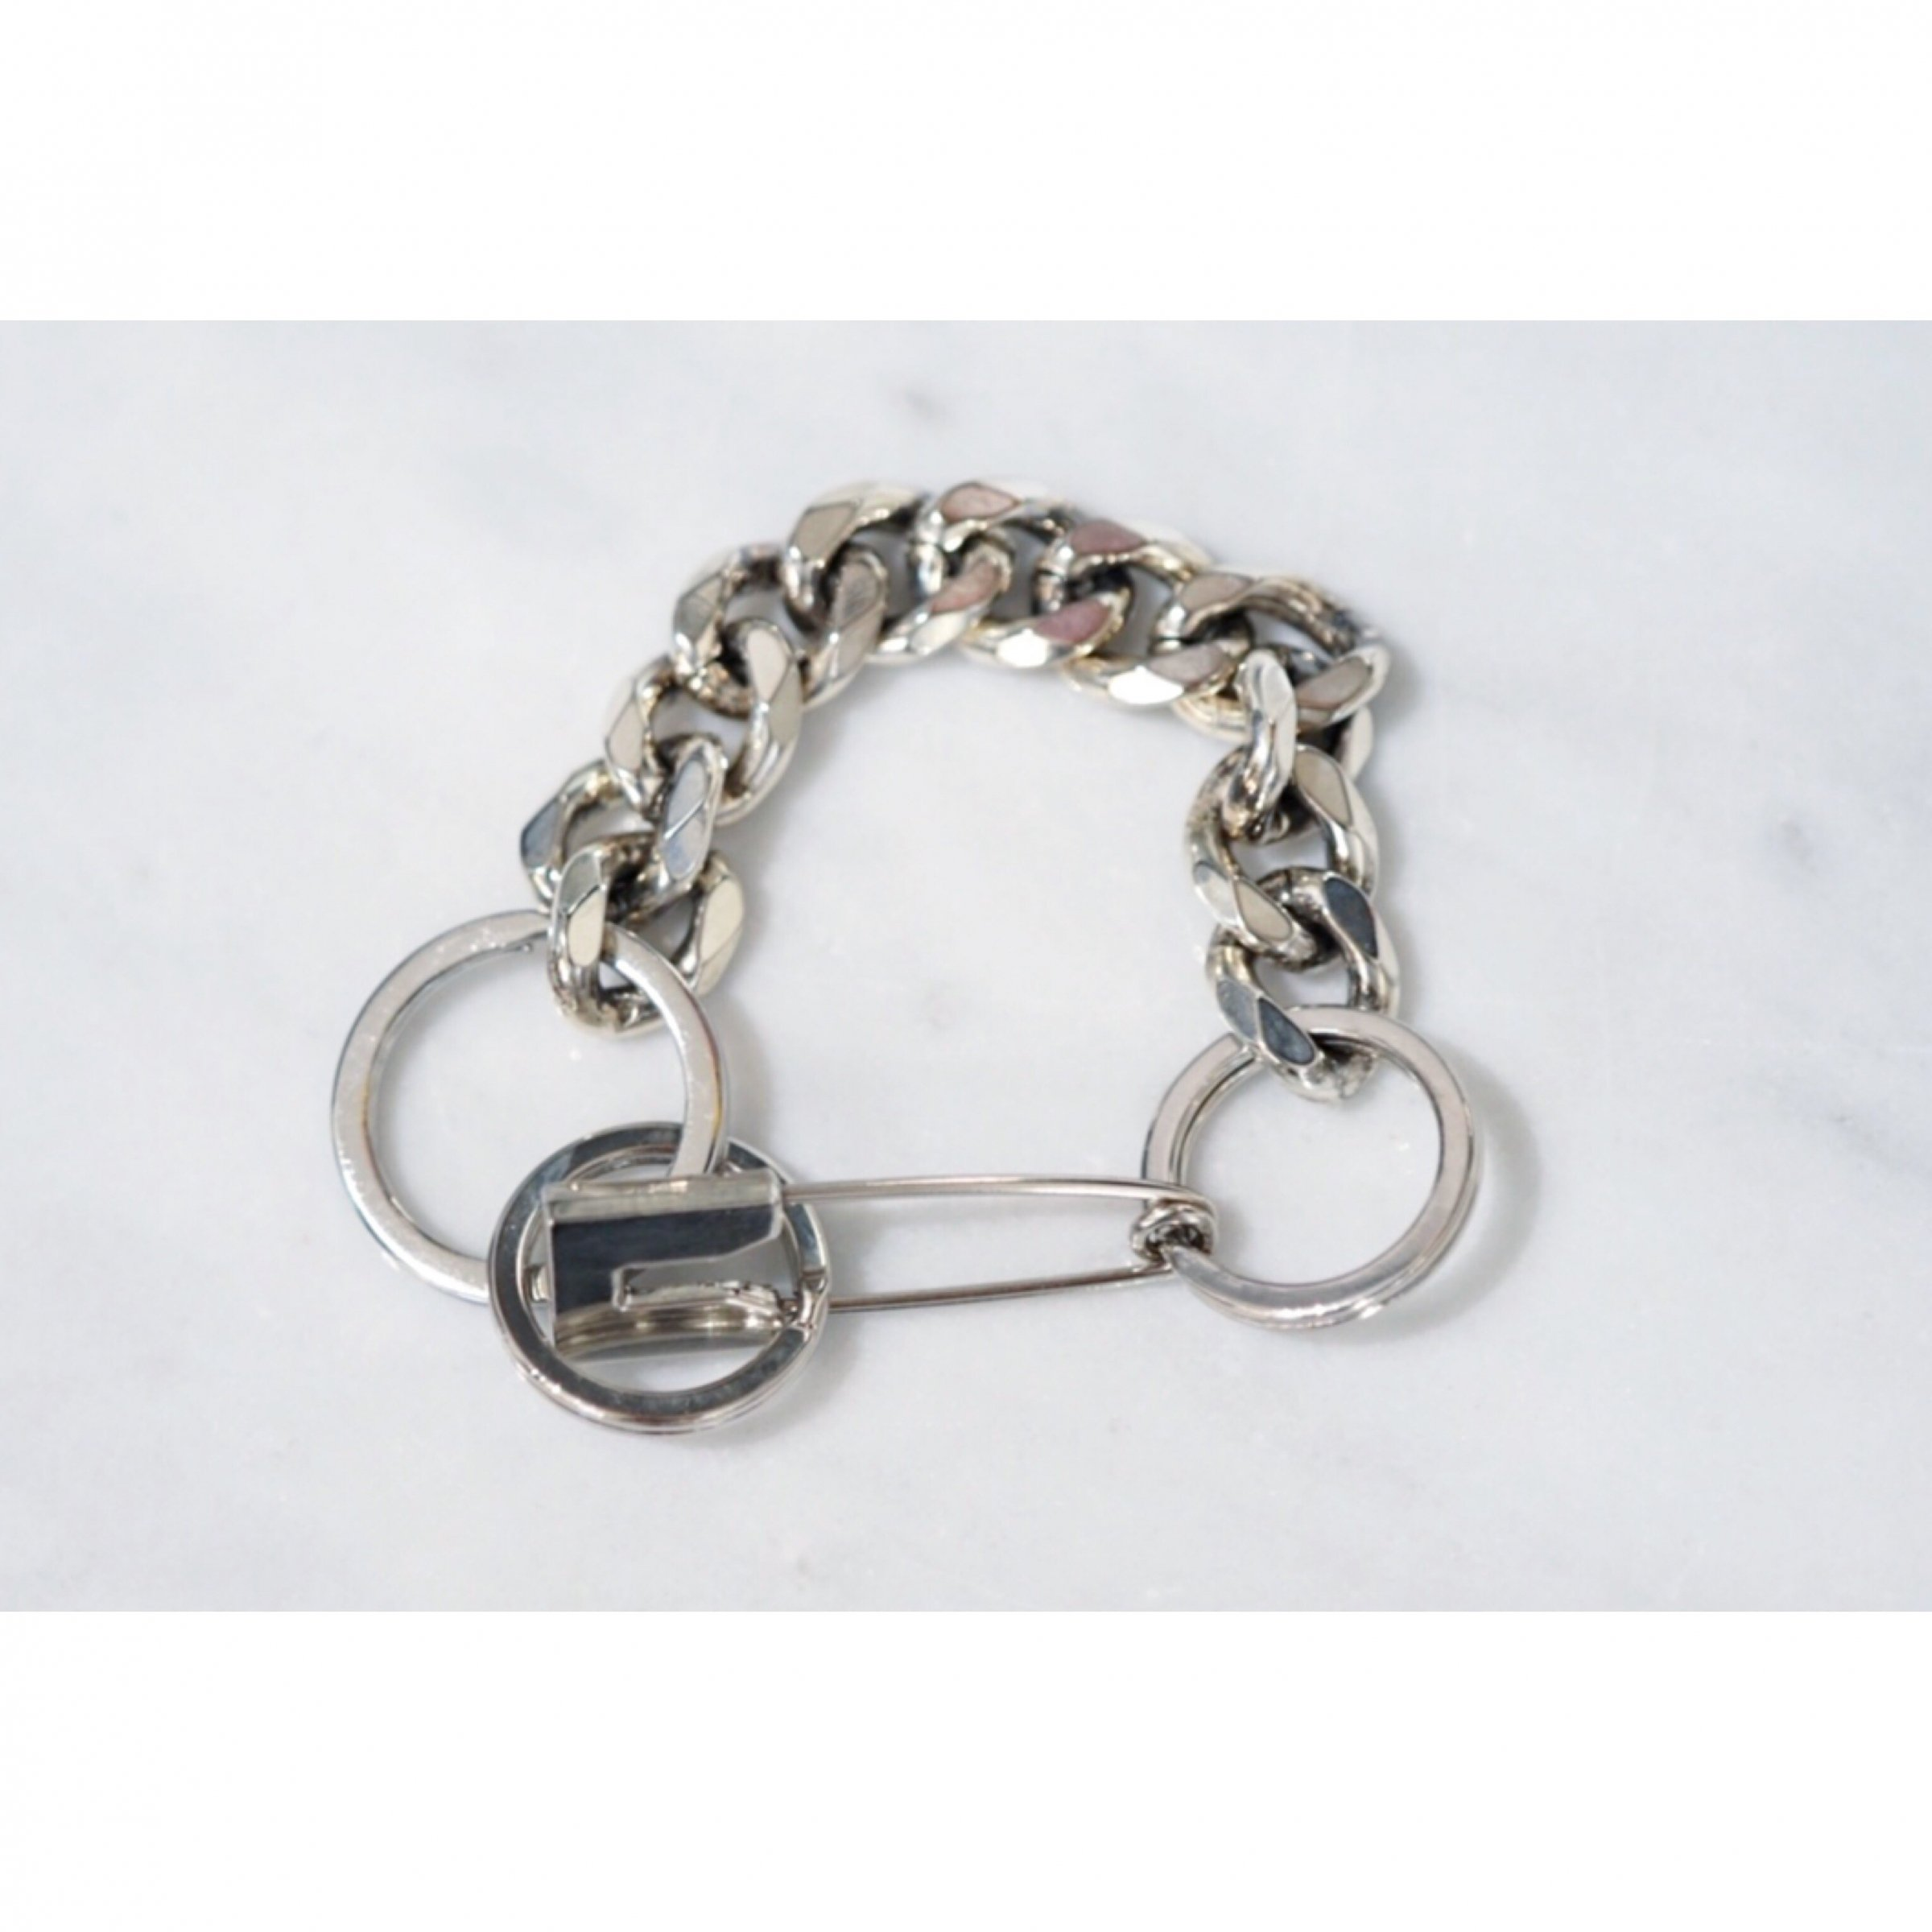 MARTINE ALI-PIN CUBAN BRACELET HEIRLOOM SILVER